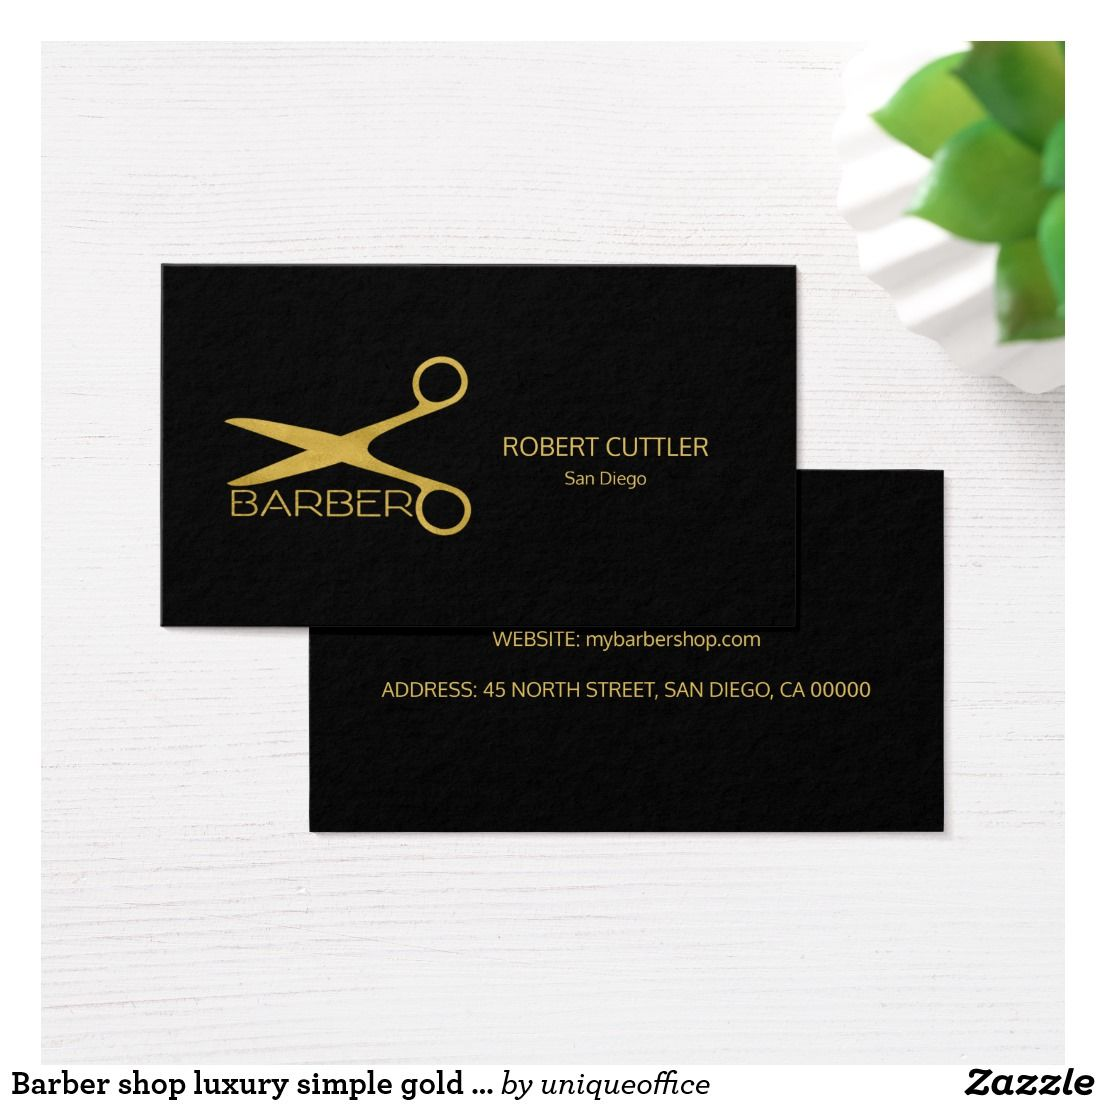 Barber shop luxury simple gold black business card business pens barber shop luxury simple gold black business card magicingreecefo Gallery